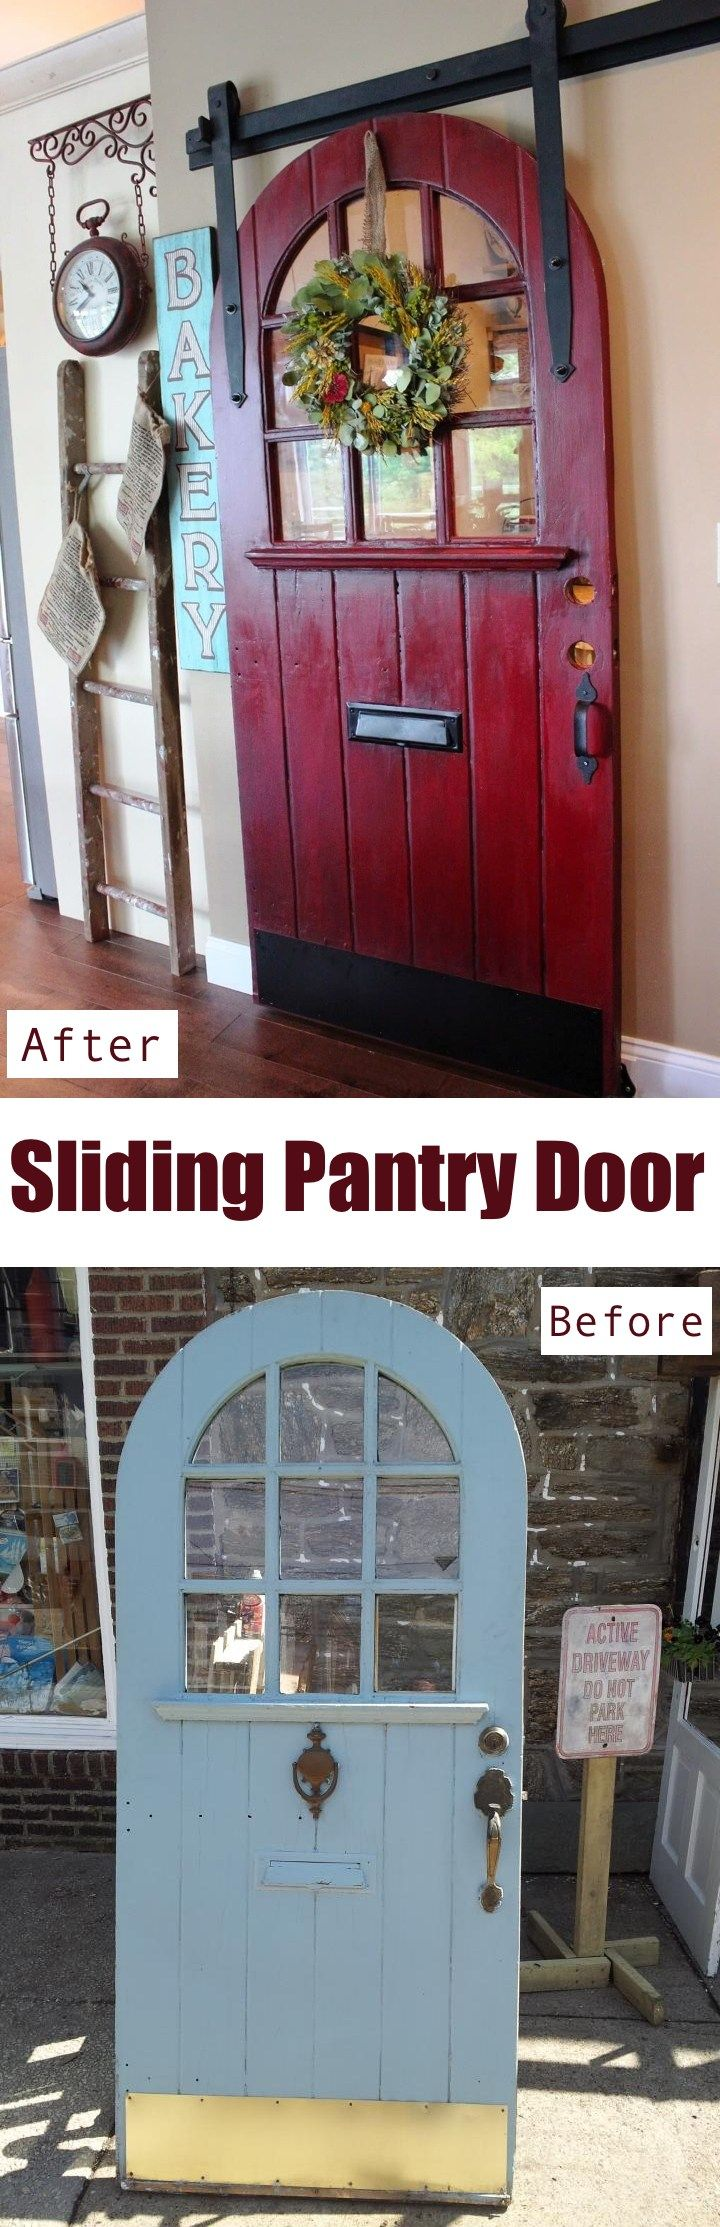 Sliding Pantry Door